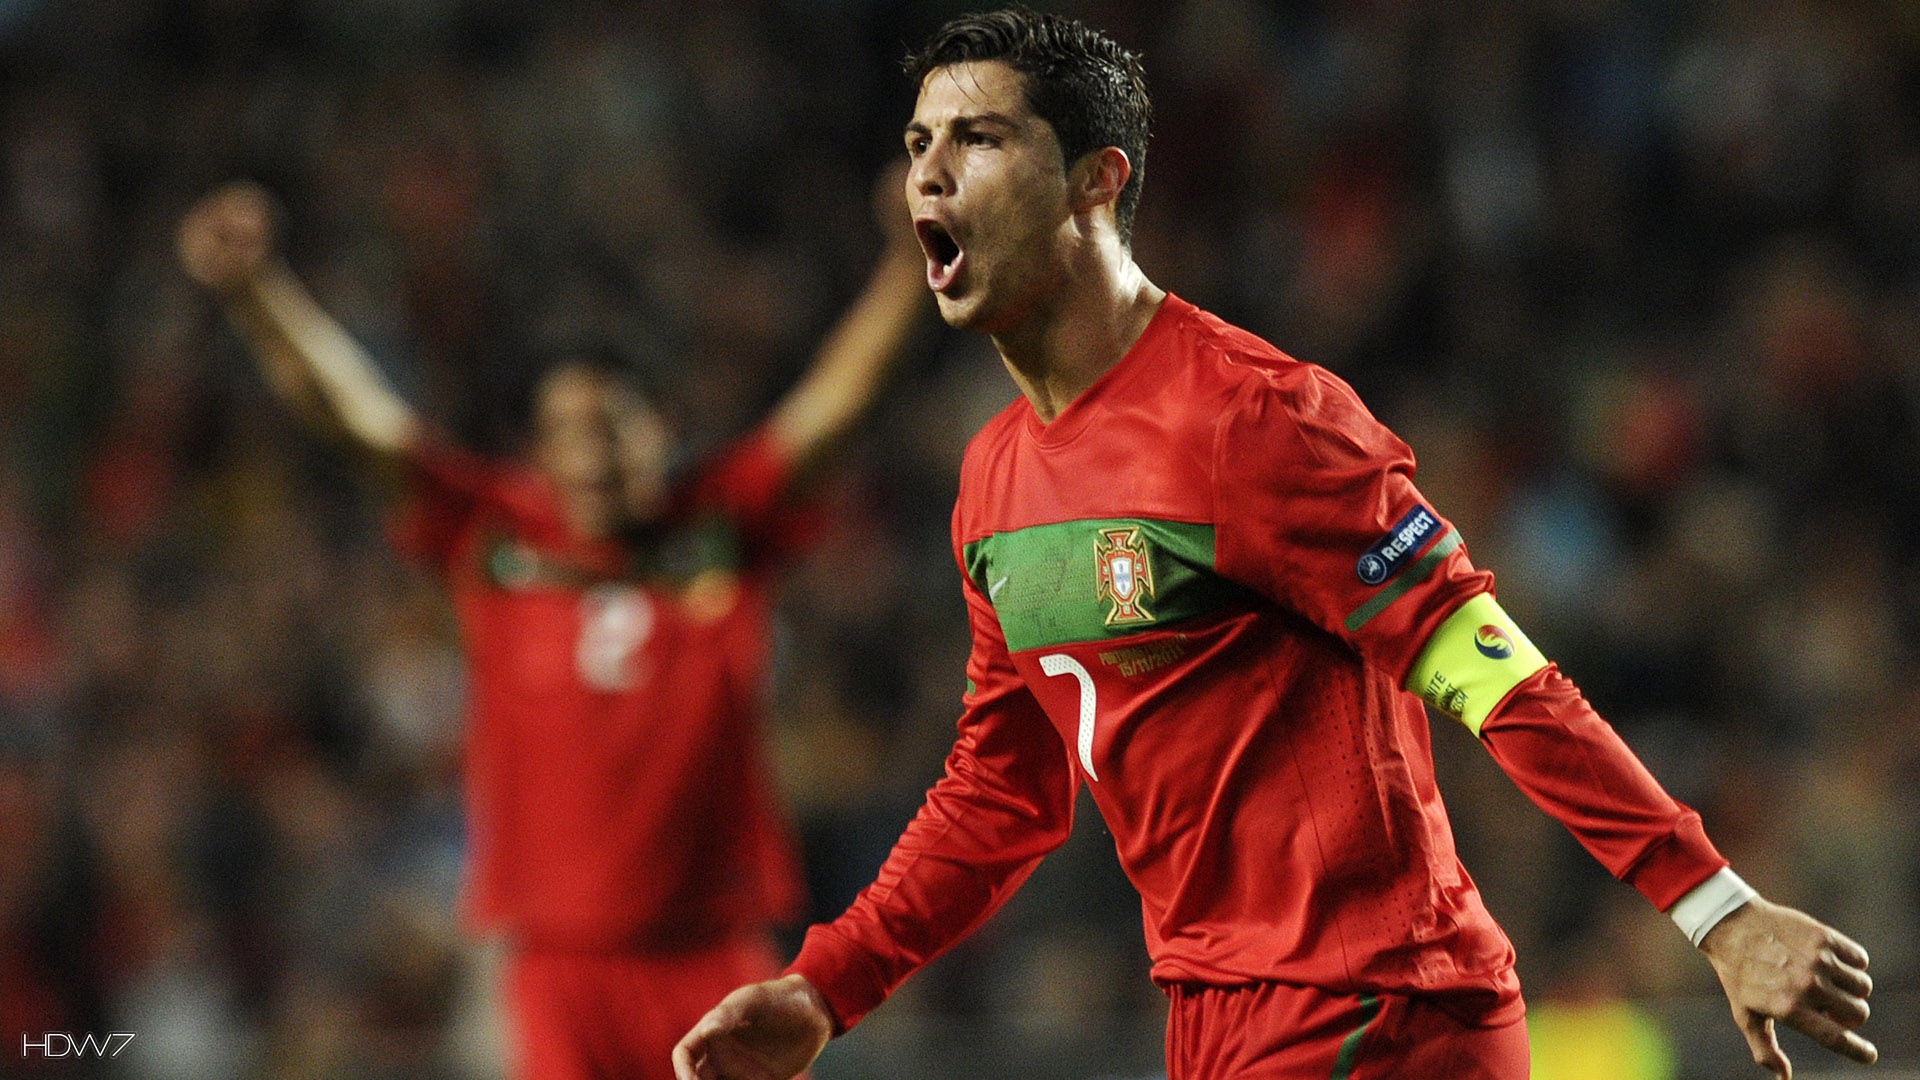 Cristiano ronaldo portugal wallpapers free download cristiano ronaldo portugal wallpapers voltagebd Images